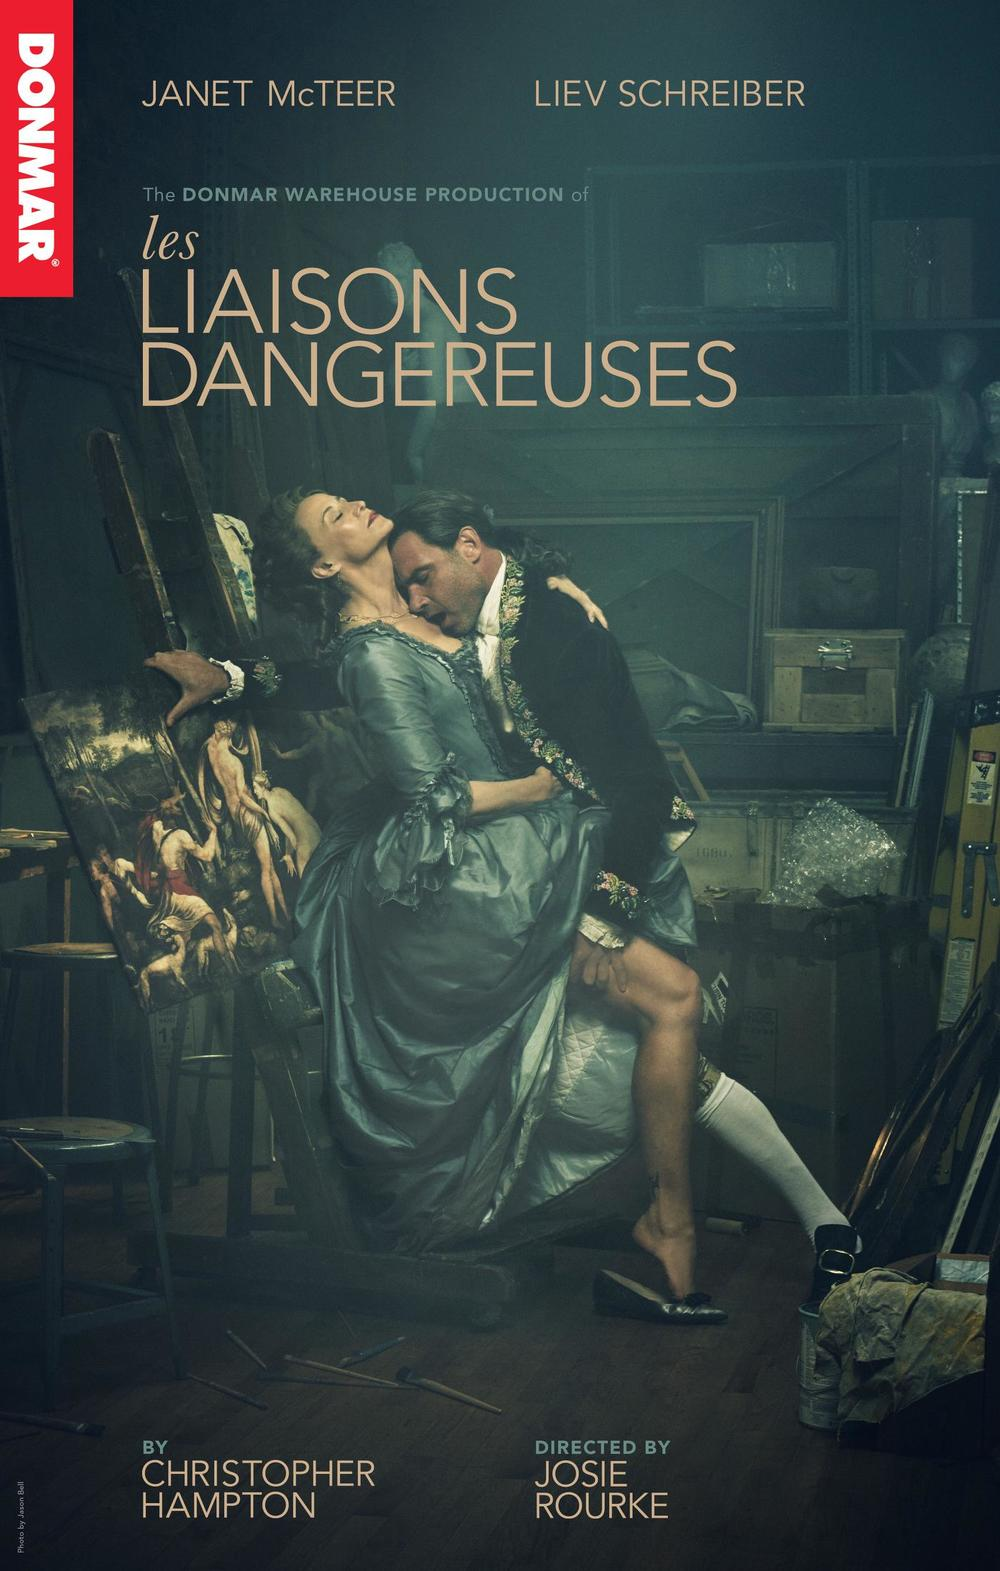 Title treatment, key-art design and execution for the 2016 revival of Les Liaisons Dangereuses starring Janet McTeer and Liev Schreiber.  Creative Direction: Vinny Sainato, Tom Callahan, Jay Cooper Photographer: Jason Bell